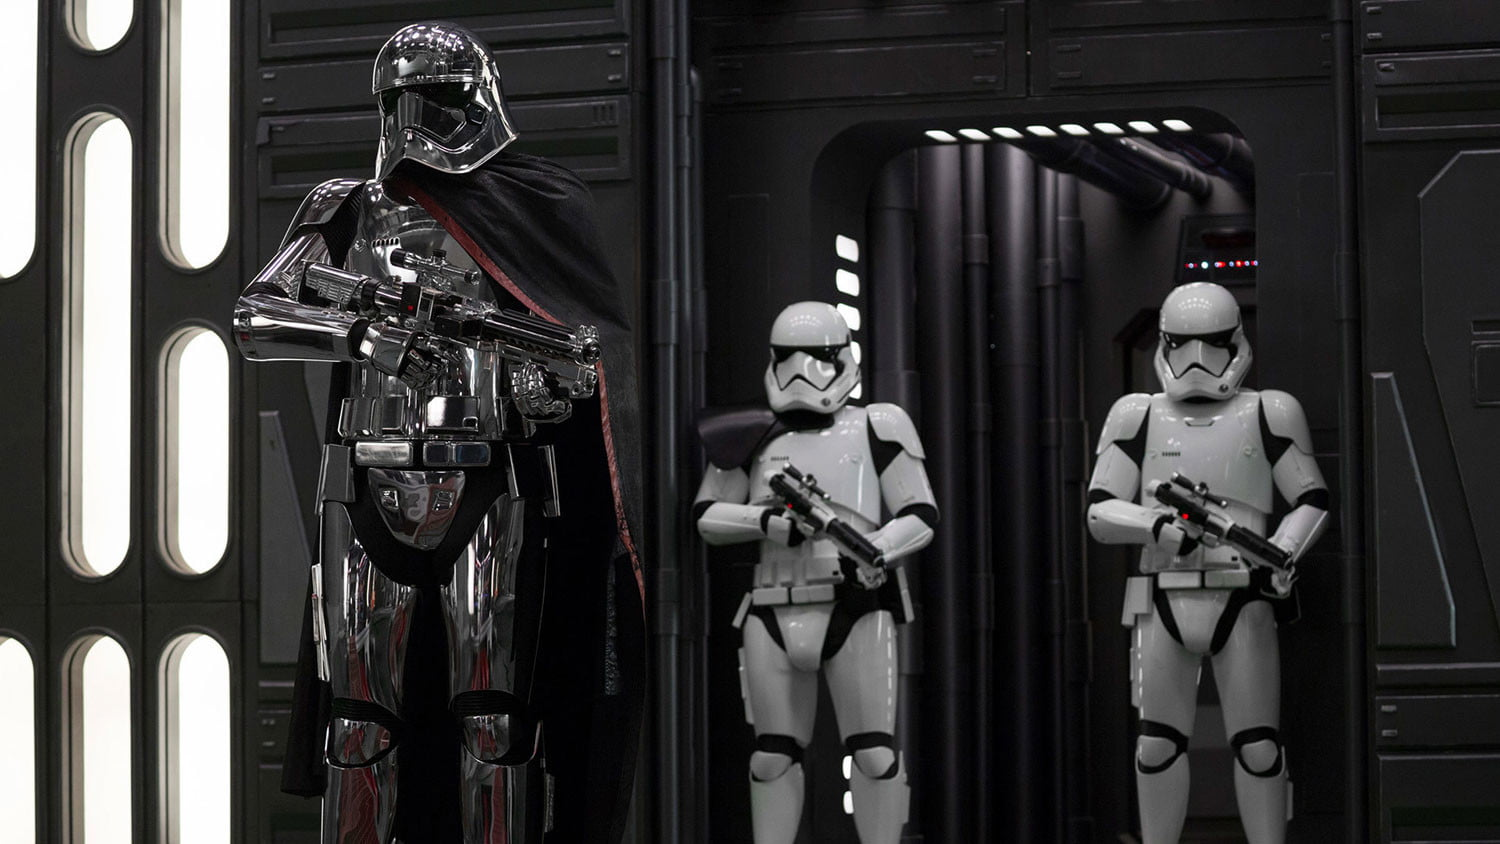 Candid Camera Star Wars : Star wars episode viii news rumors everything you need to know